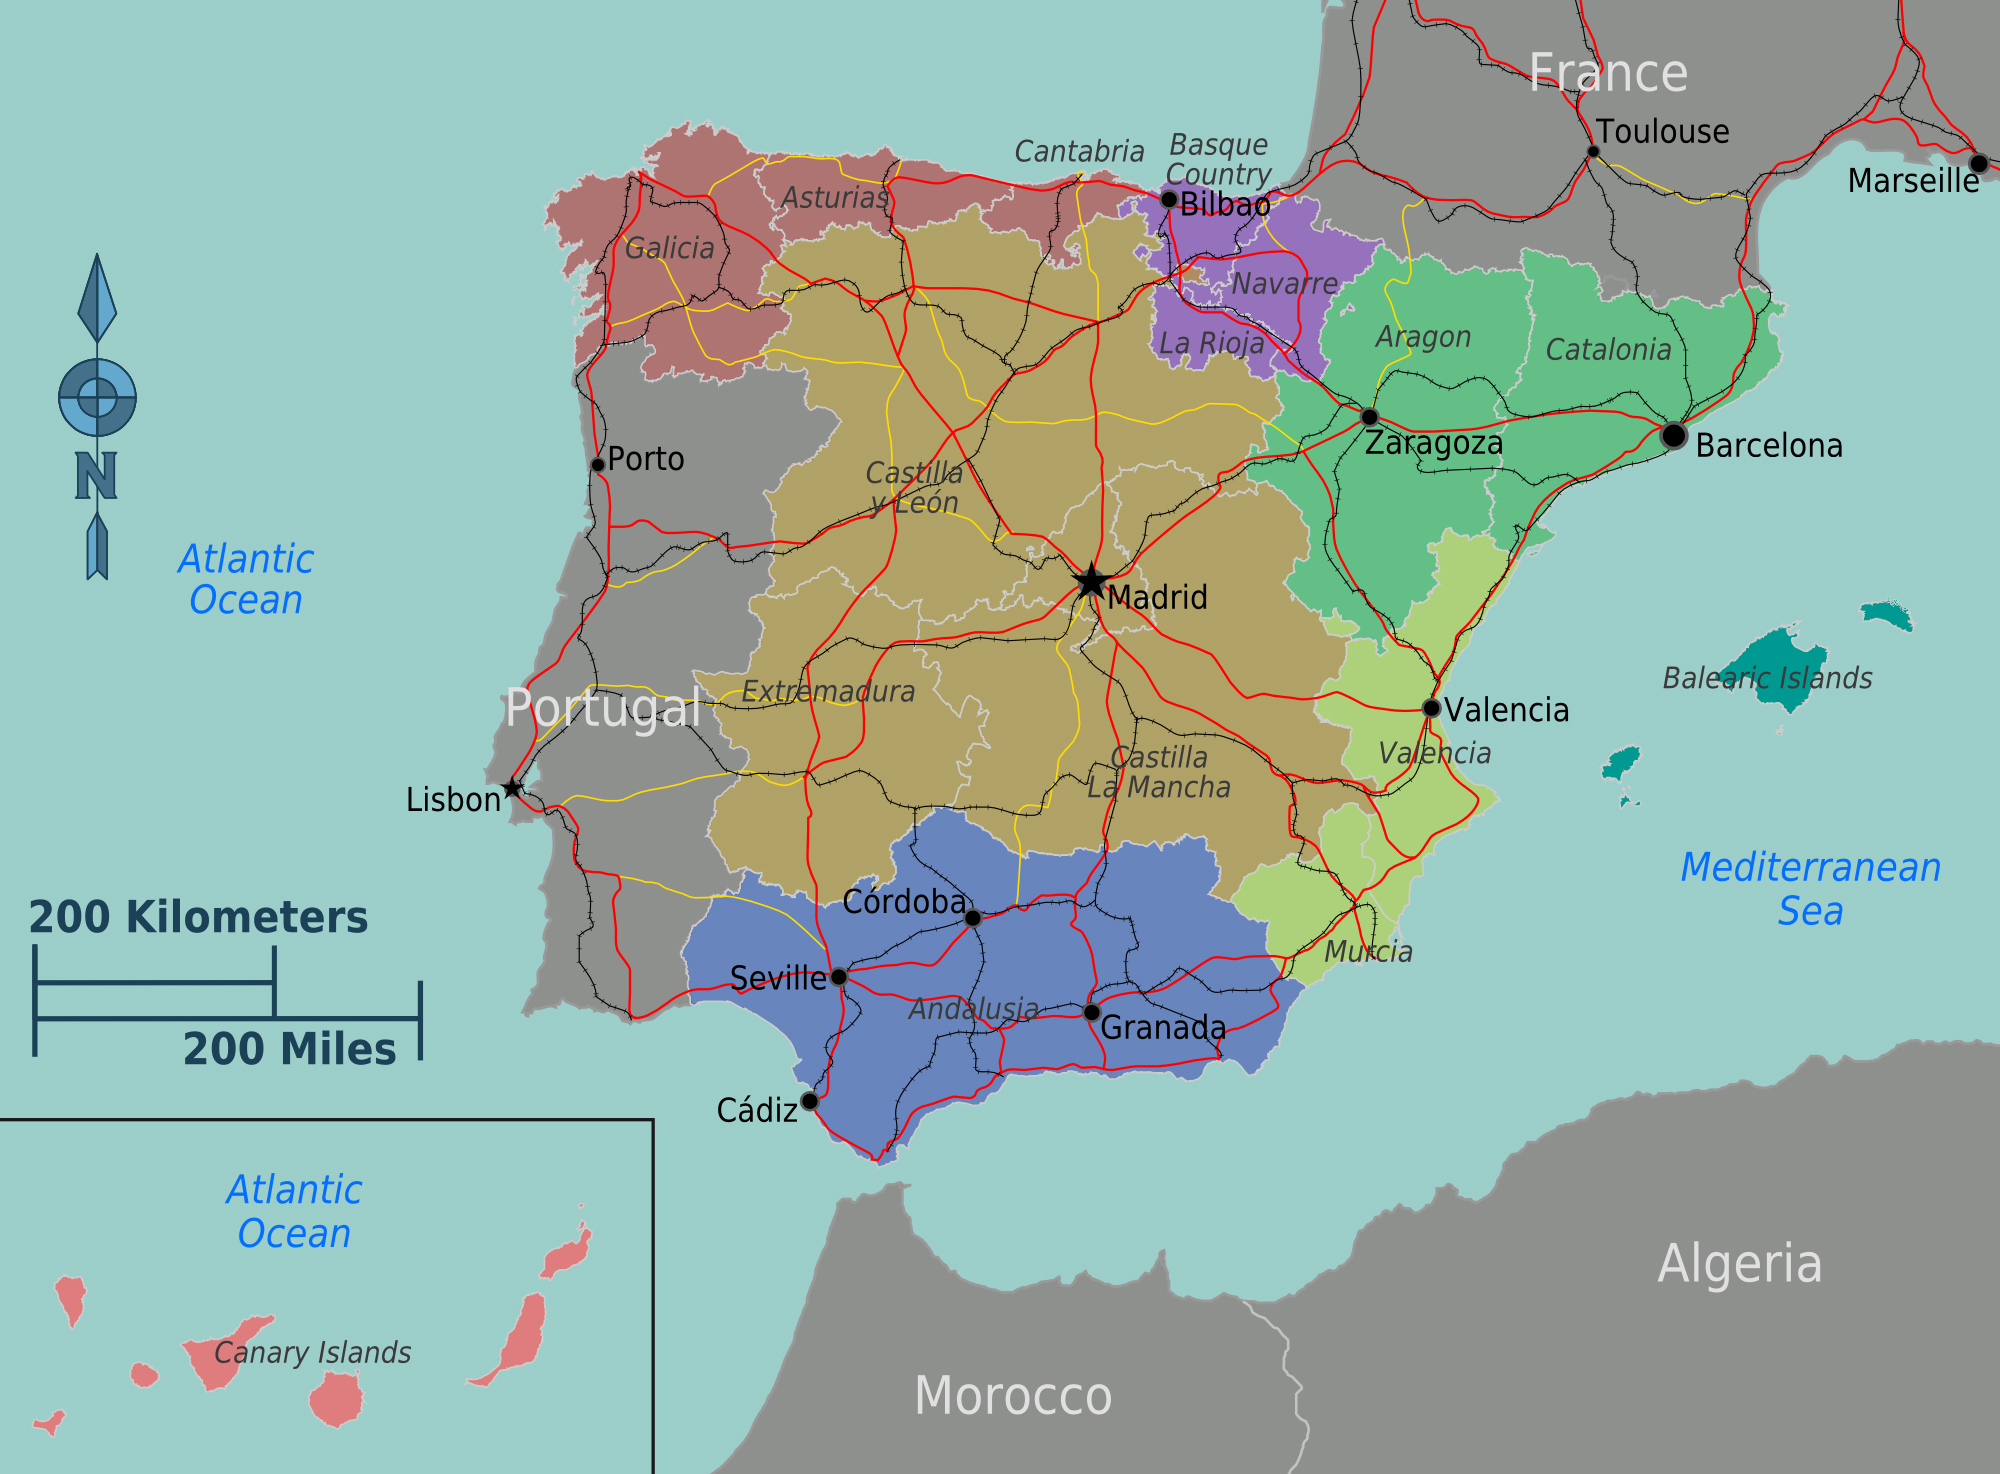 Large Regions Map Of Spain Spain Europe Mapsland Maps Of - Large map of spain